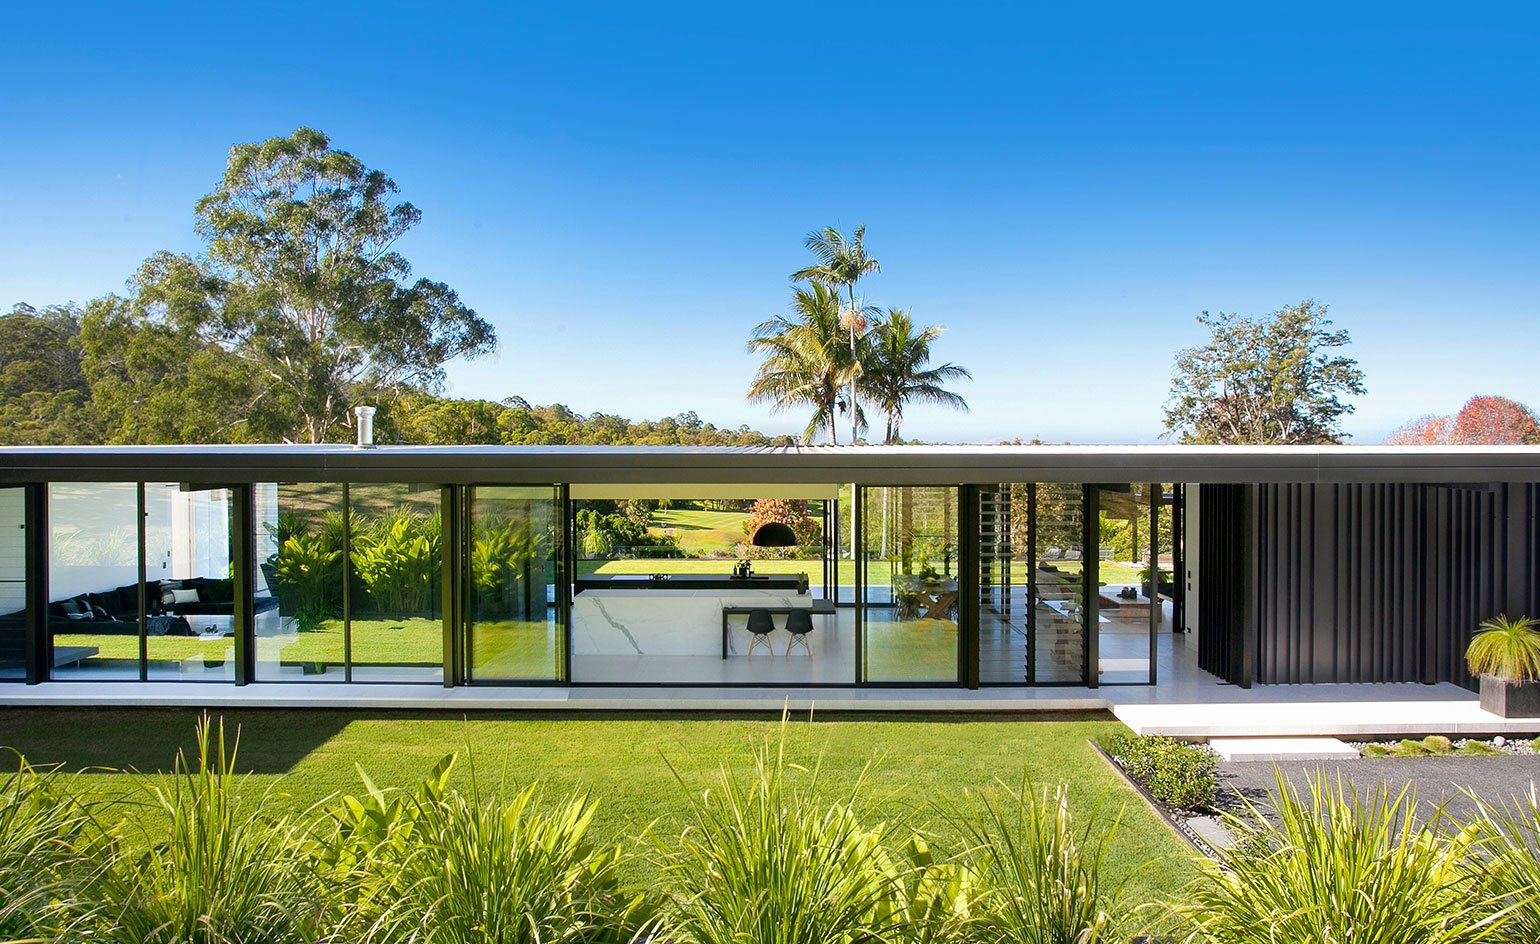 Contemporary house - architect Sarah Waller's Doonan Glass House - front facade view